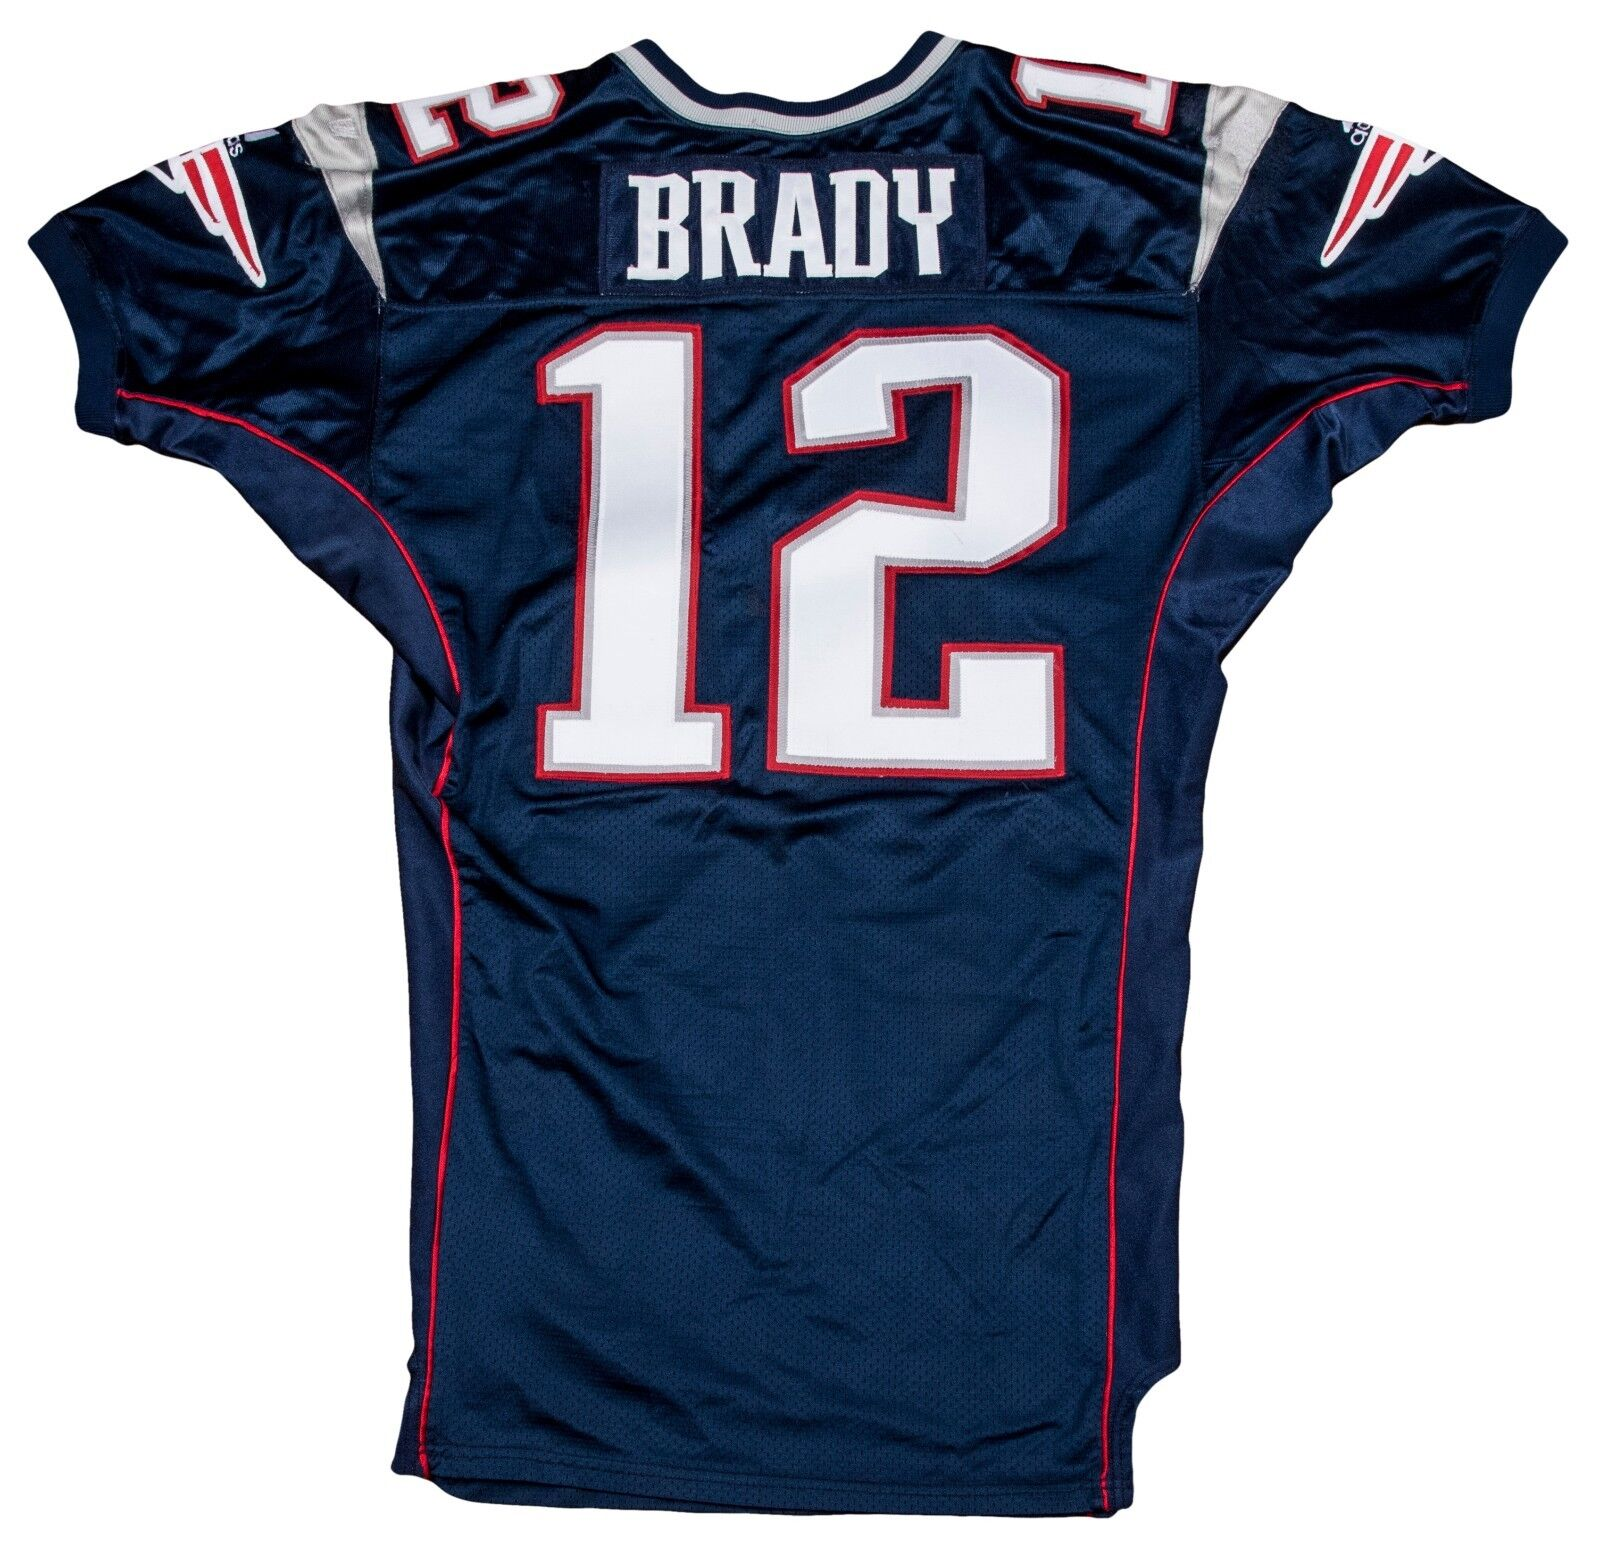 2000 Tom Brady Home Jersey - LIKELY FIRST HOME GAME JERSEY EVER WORN BY BRADY!!!